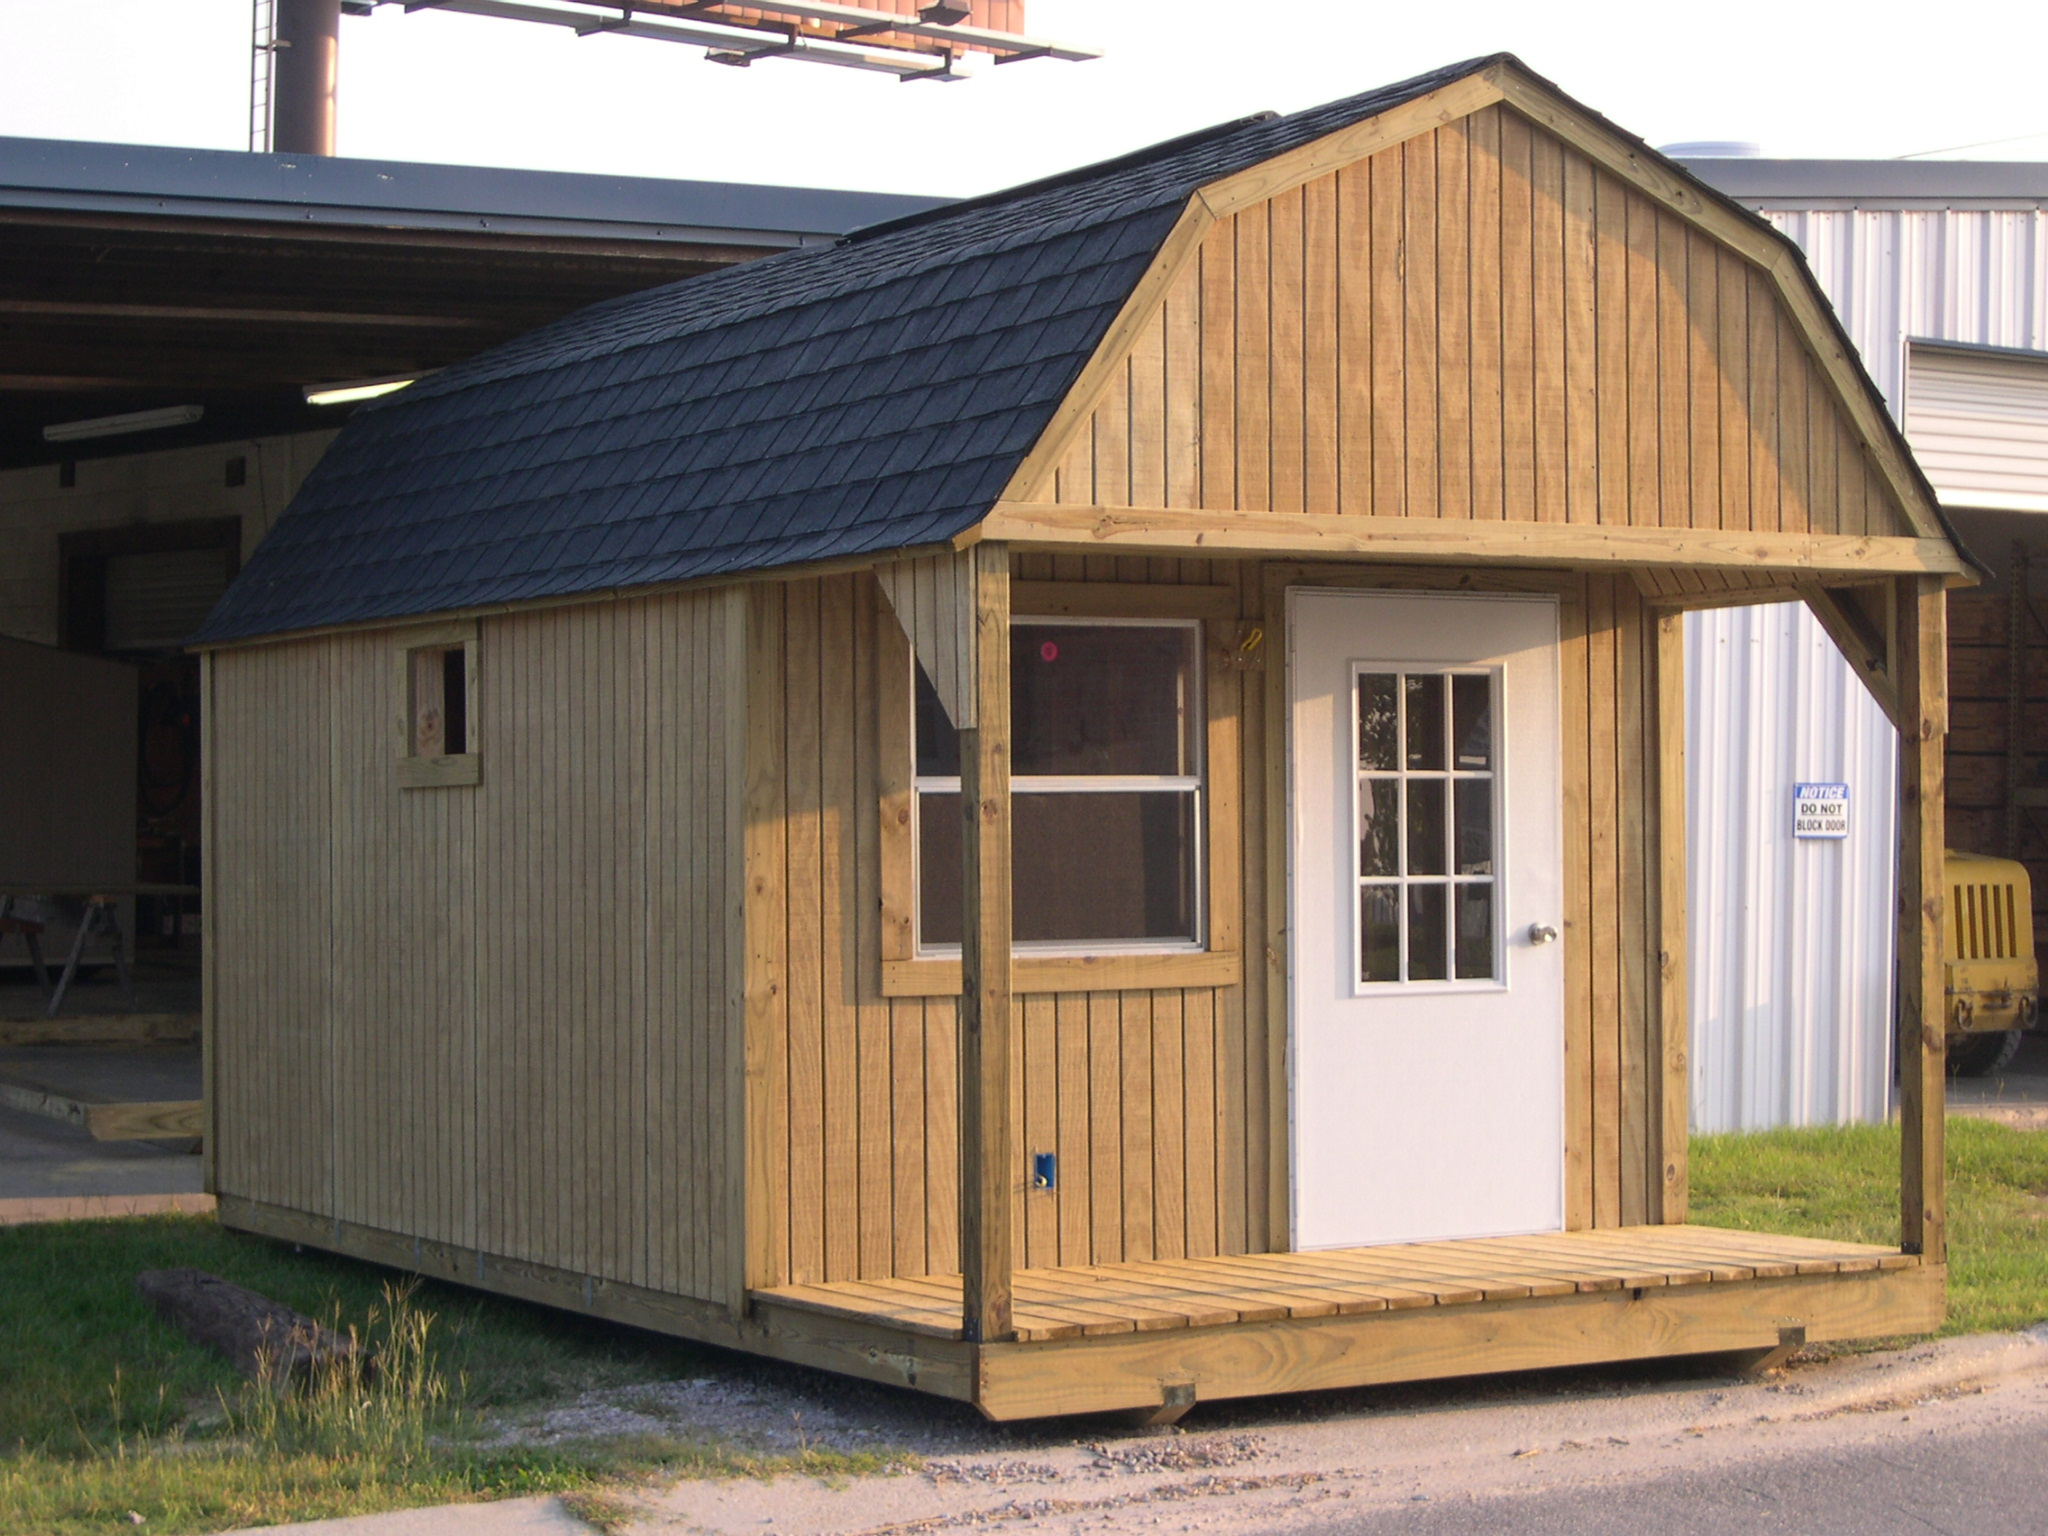 Woodwork building plans wood storage sheds pdf plans for Wood storage building plans